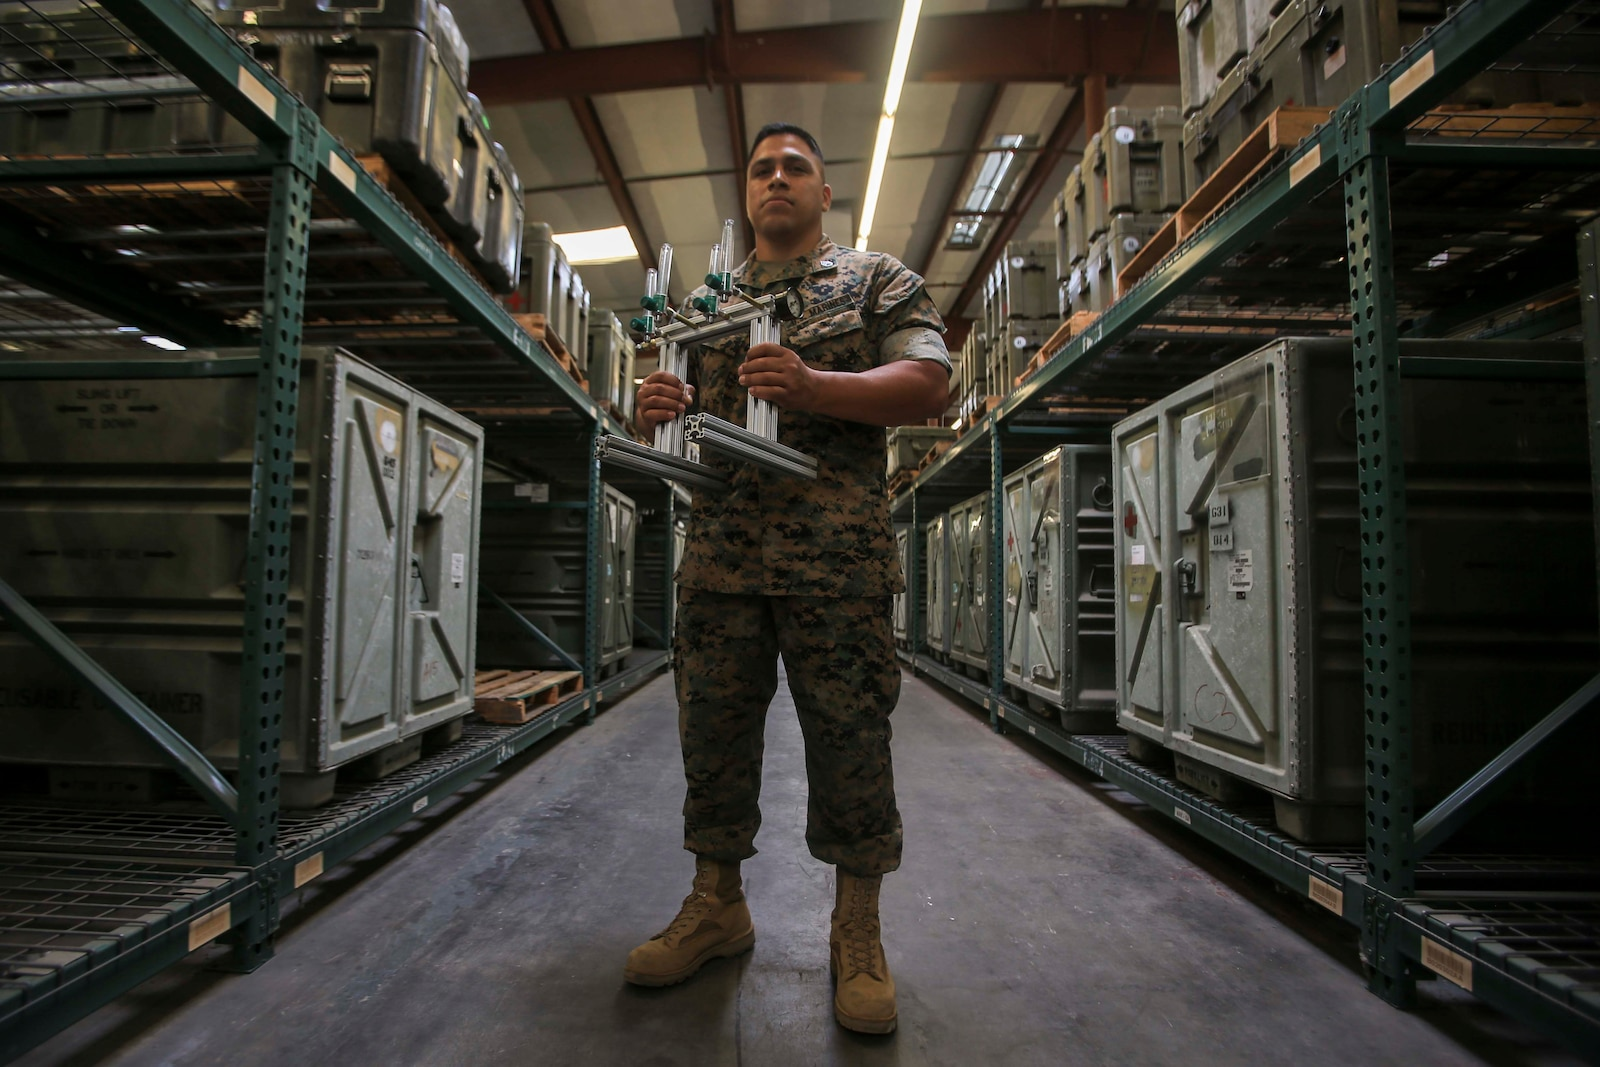 Staff Sgt. Victor Cervantes, the Digital Manufacturing Platoon staff non-commissioned officer in charge with Ordnance Maintenance Company, 1st Maintenance Battalion, 1st Marine Logistics Group, developed an oxygen manifold to help ease the burden on medical staff on Camp Pendleton, California, June 25, 2020. For his role in the development and fabrication of an efficient oxygen manifold that can provide oxygen to multiple patients from one tank, Cervantes received the 1st MLG Innovation Award from 1st MLG Commanding General Brig. Gen. Bobbi Shea. (U.S. Marine Corps photo by Pfc. Ulises Salgado)